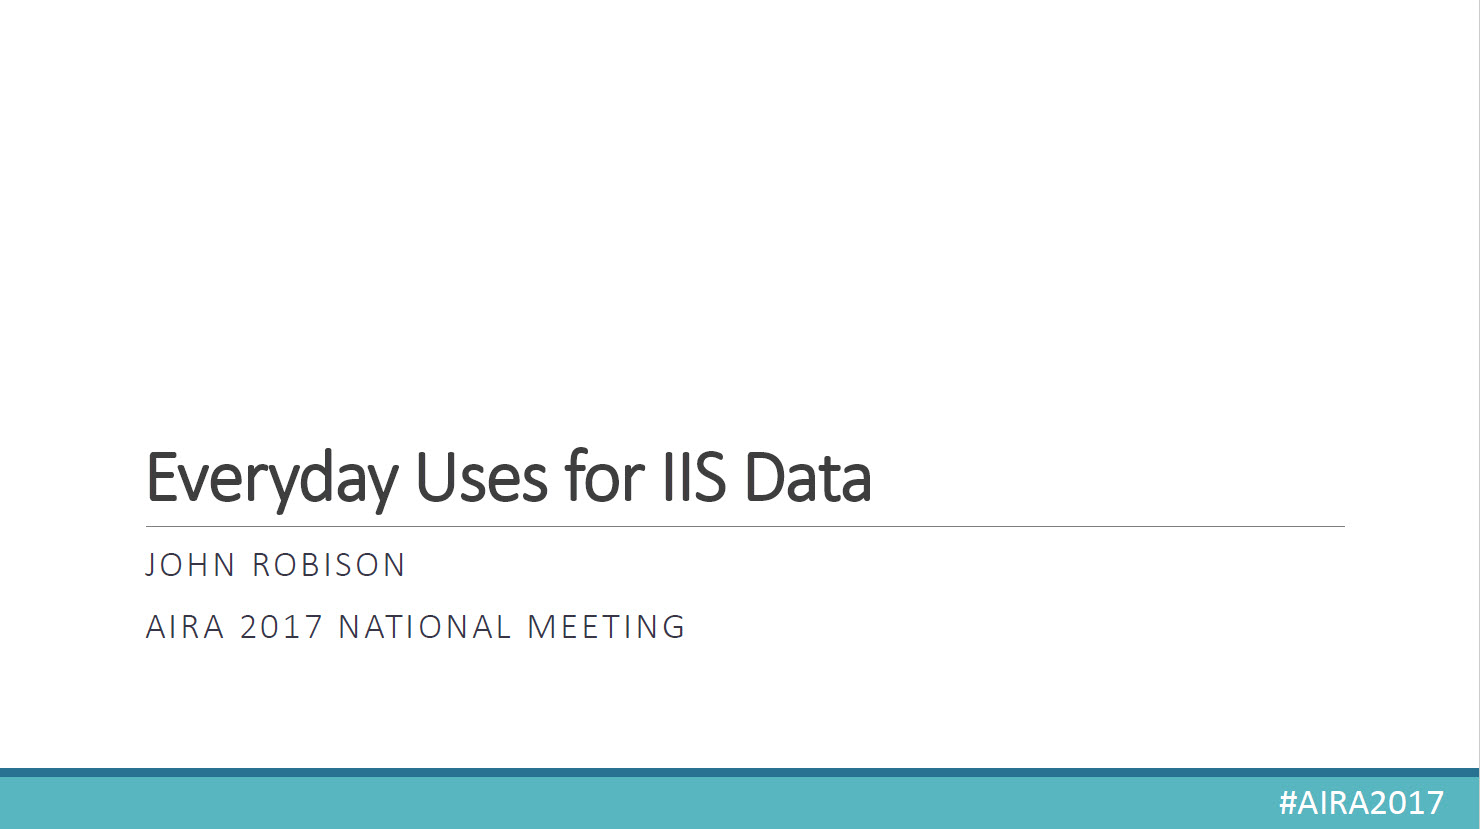 Everyday Uses for IIS Data